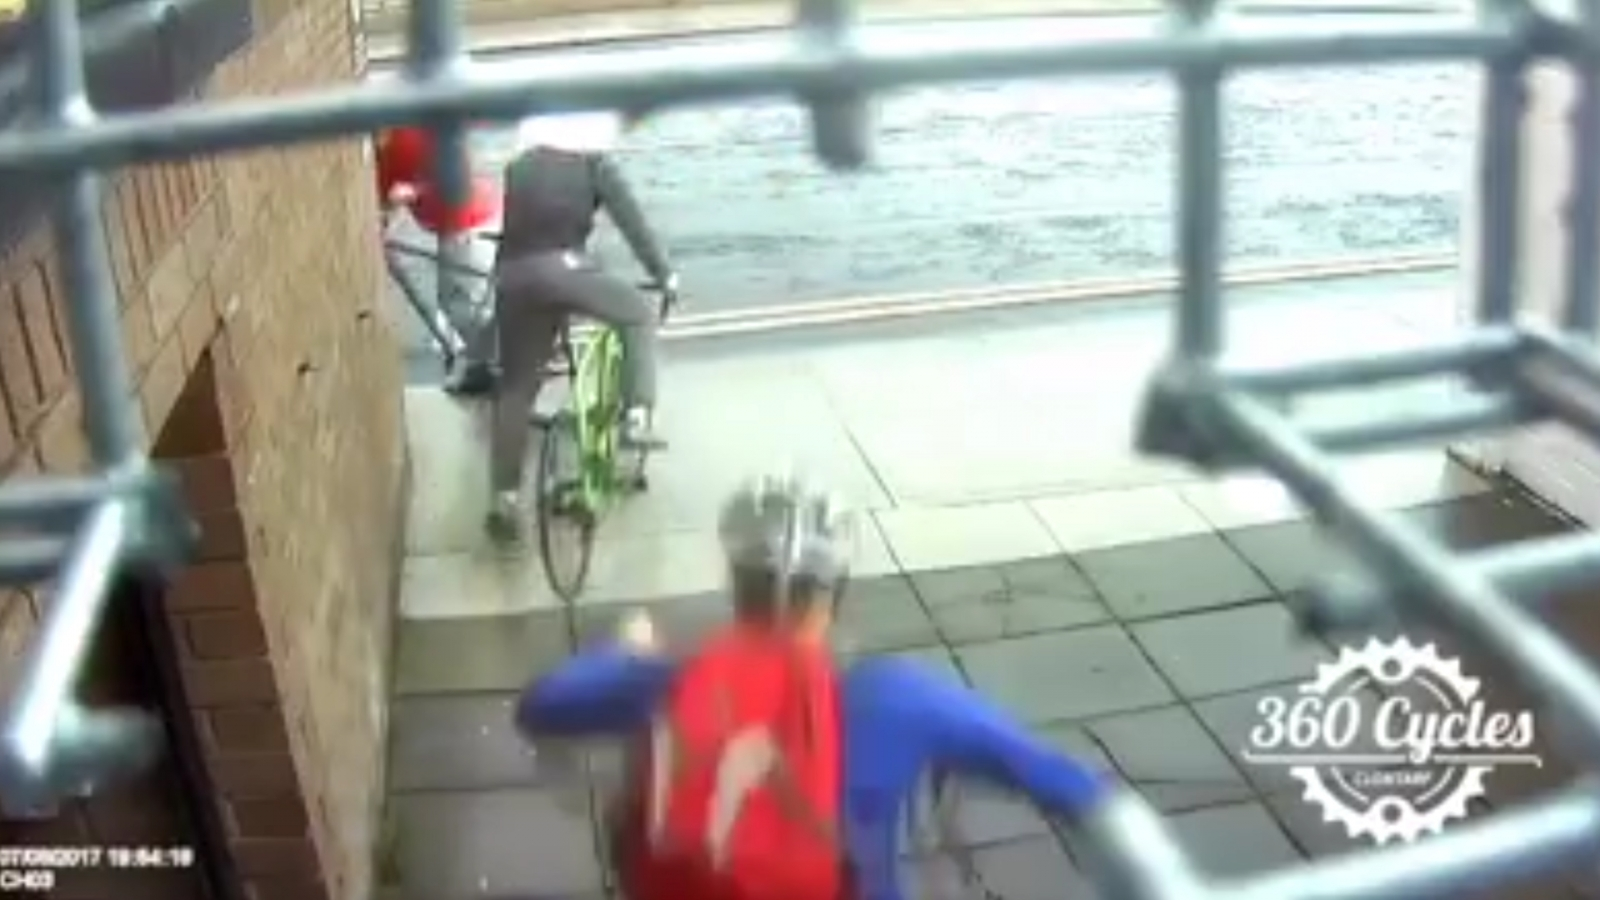 Cyclist dramatically tackles thieves after leaving bike unattended